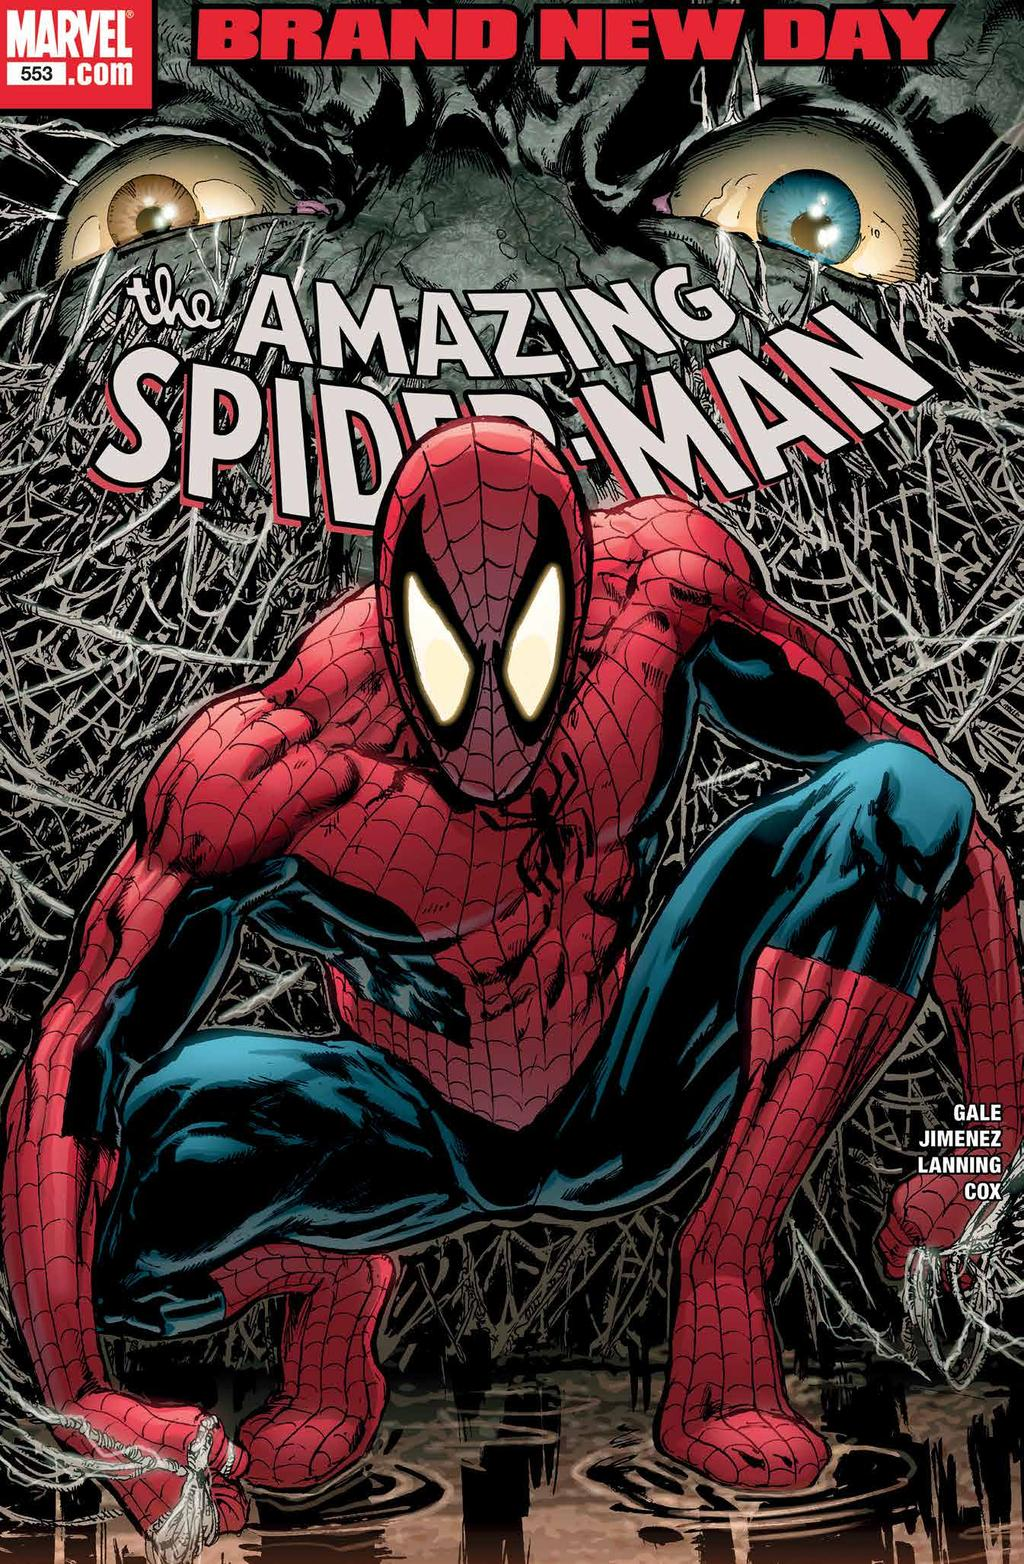 The Amazing Spider-Man #553 - Brand New